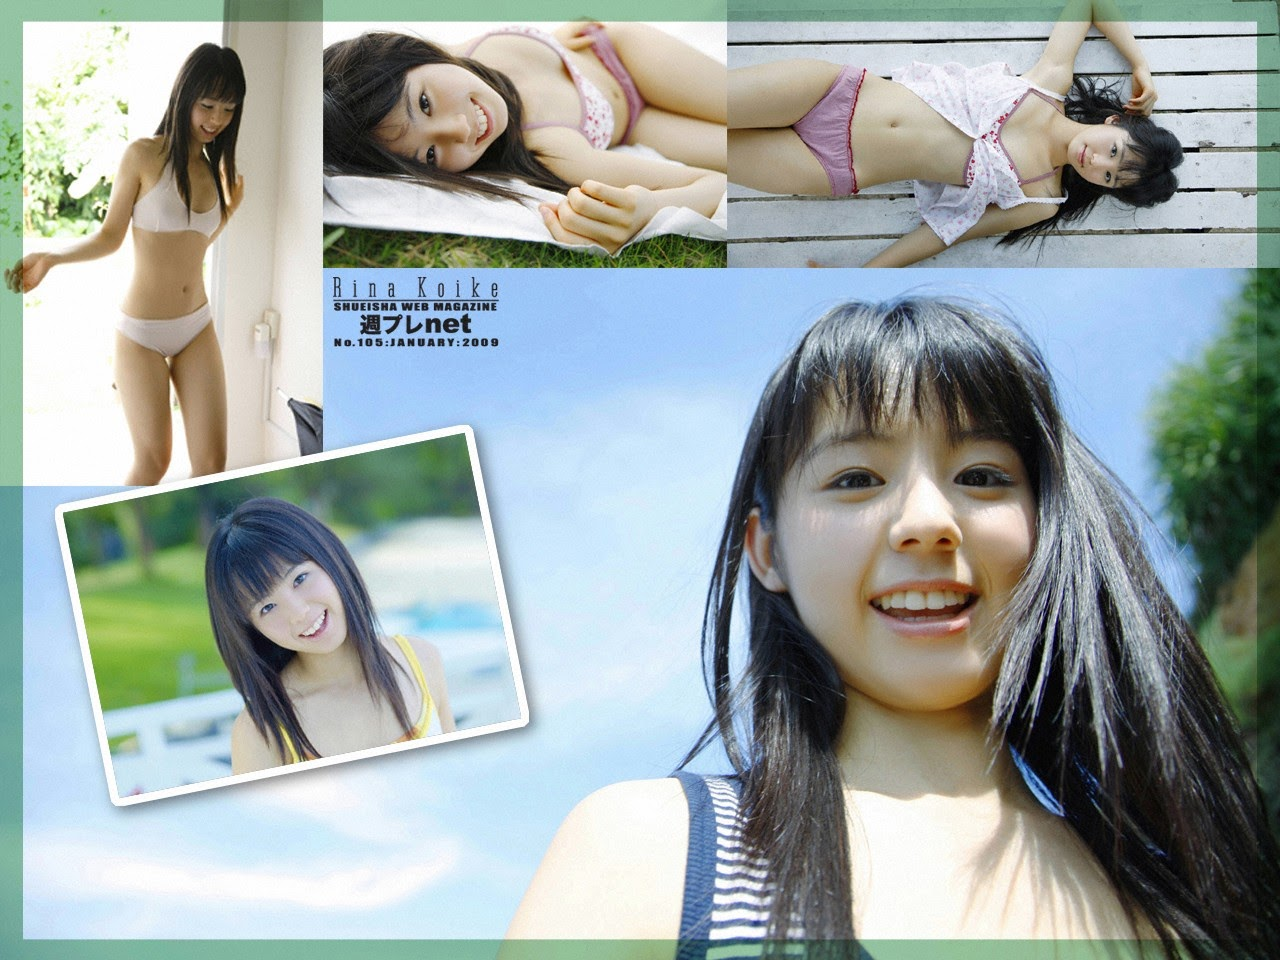 The ultimate beautiful girls angel smile explodes in Okinawa for the first time experience Rina Koike040